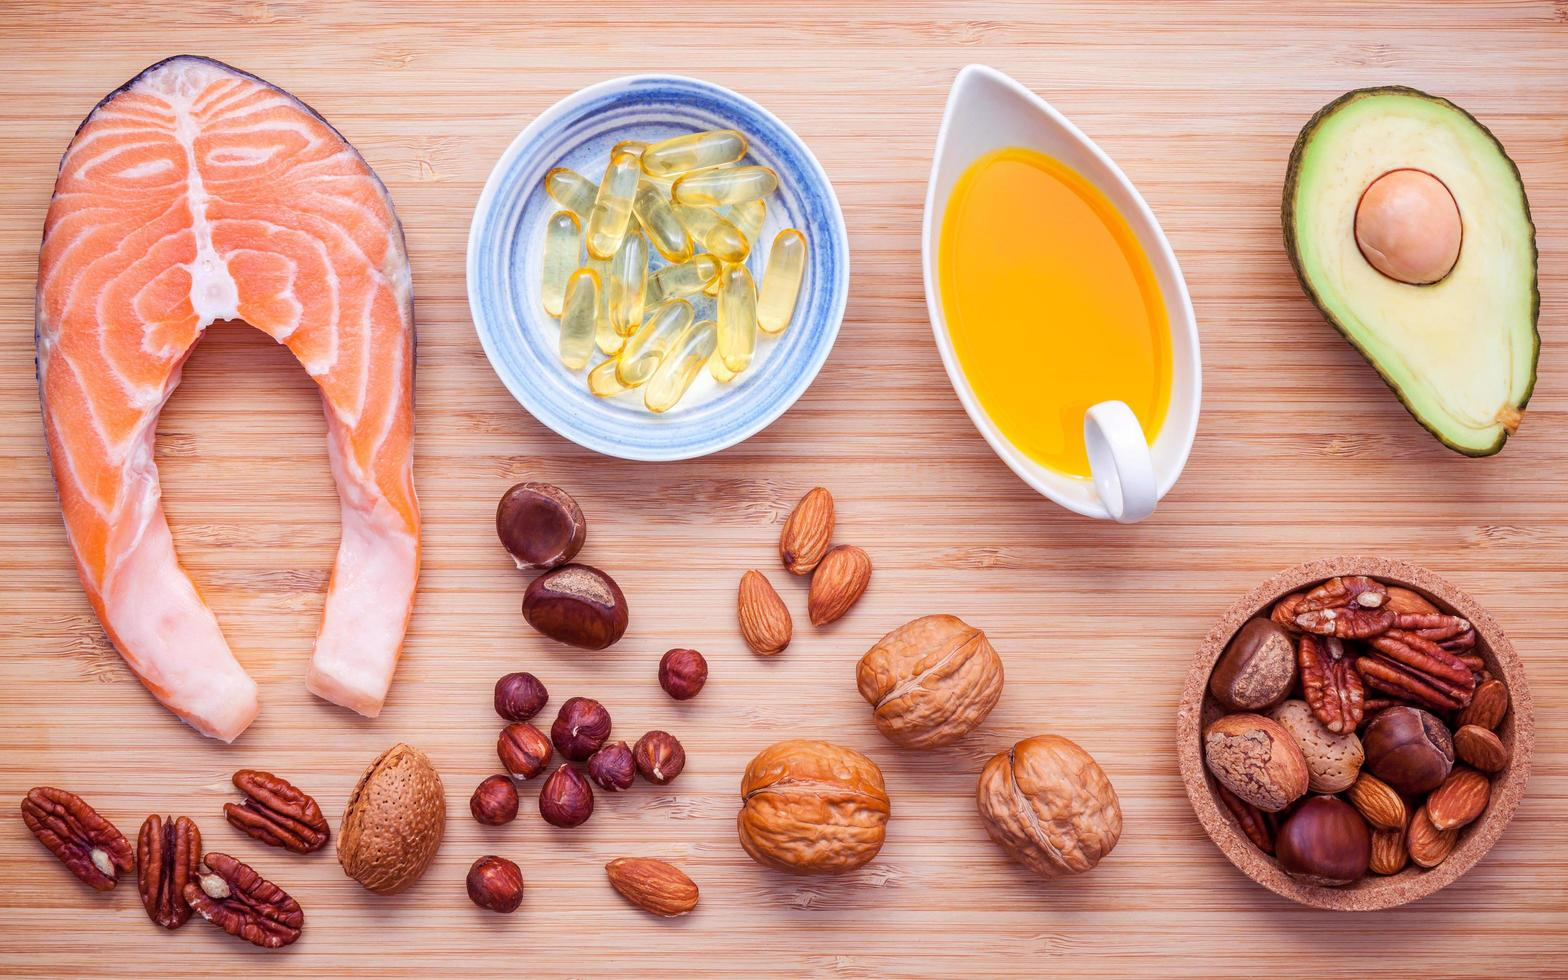 Selection food sources of omega 3 and unsaturated fats photo